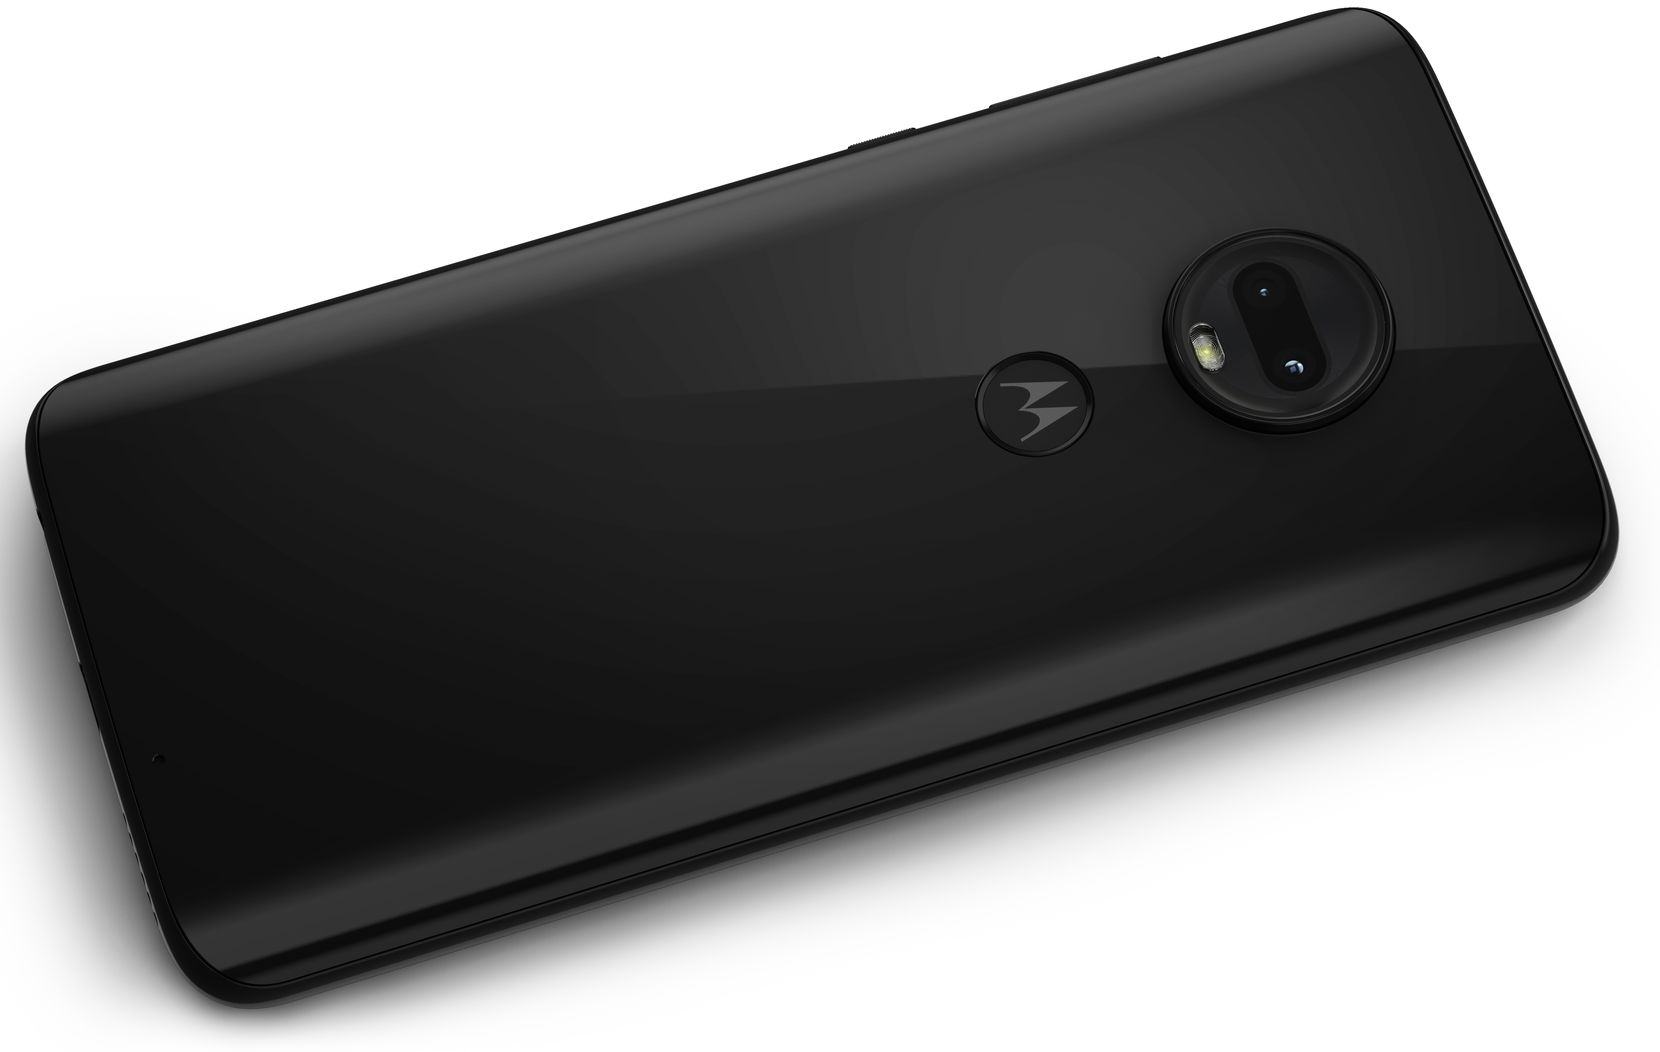 The back of the Motorola Moto G7, showing both cameras